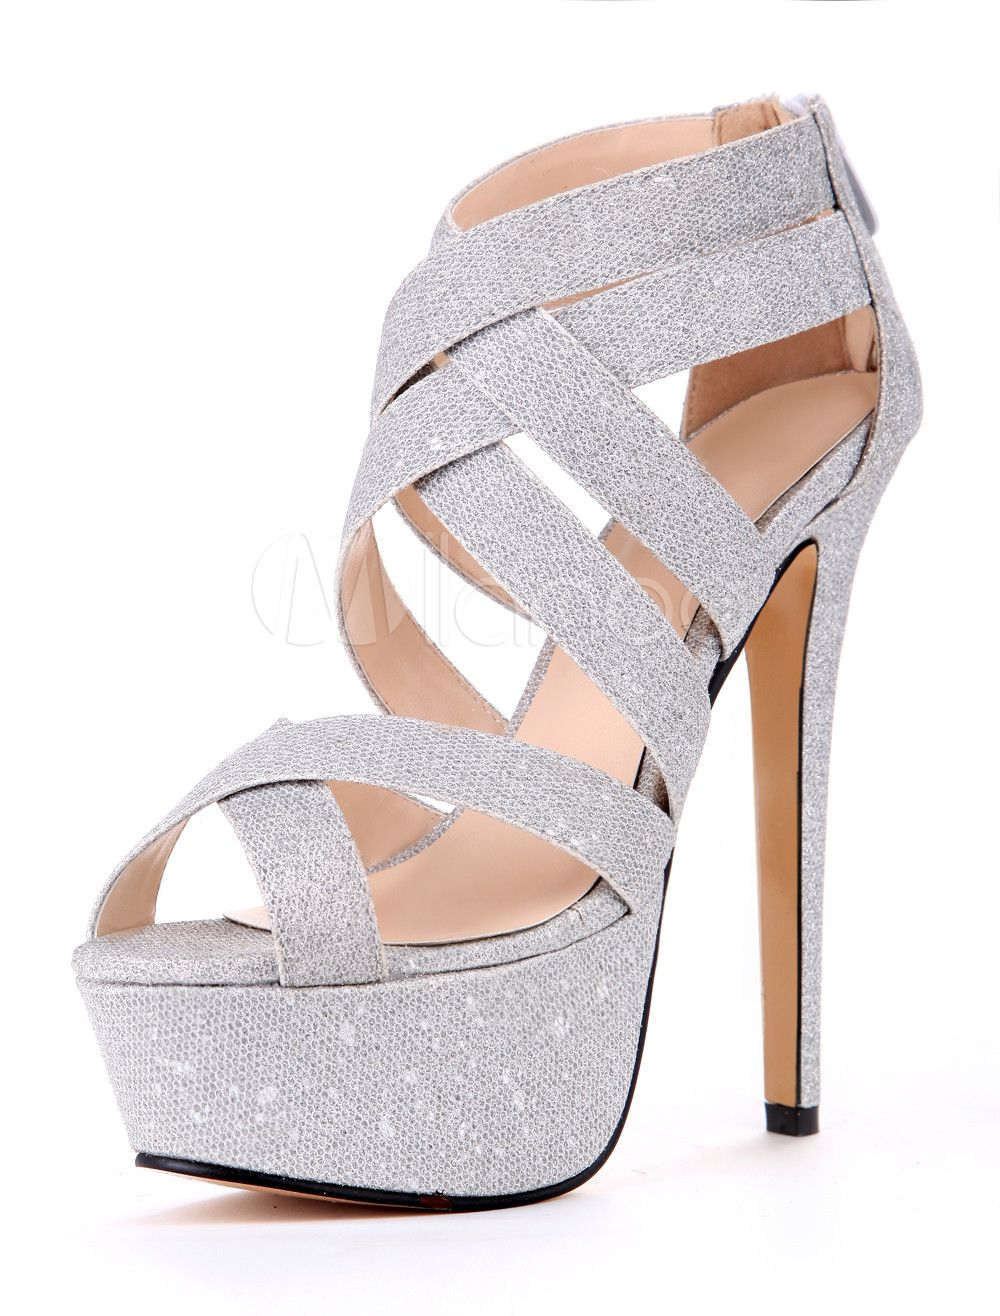 new arrive shoes. Silver Cloth Stiletto Heel Gladiator Sandals 5036172faf6a